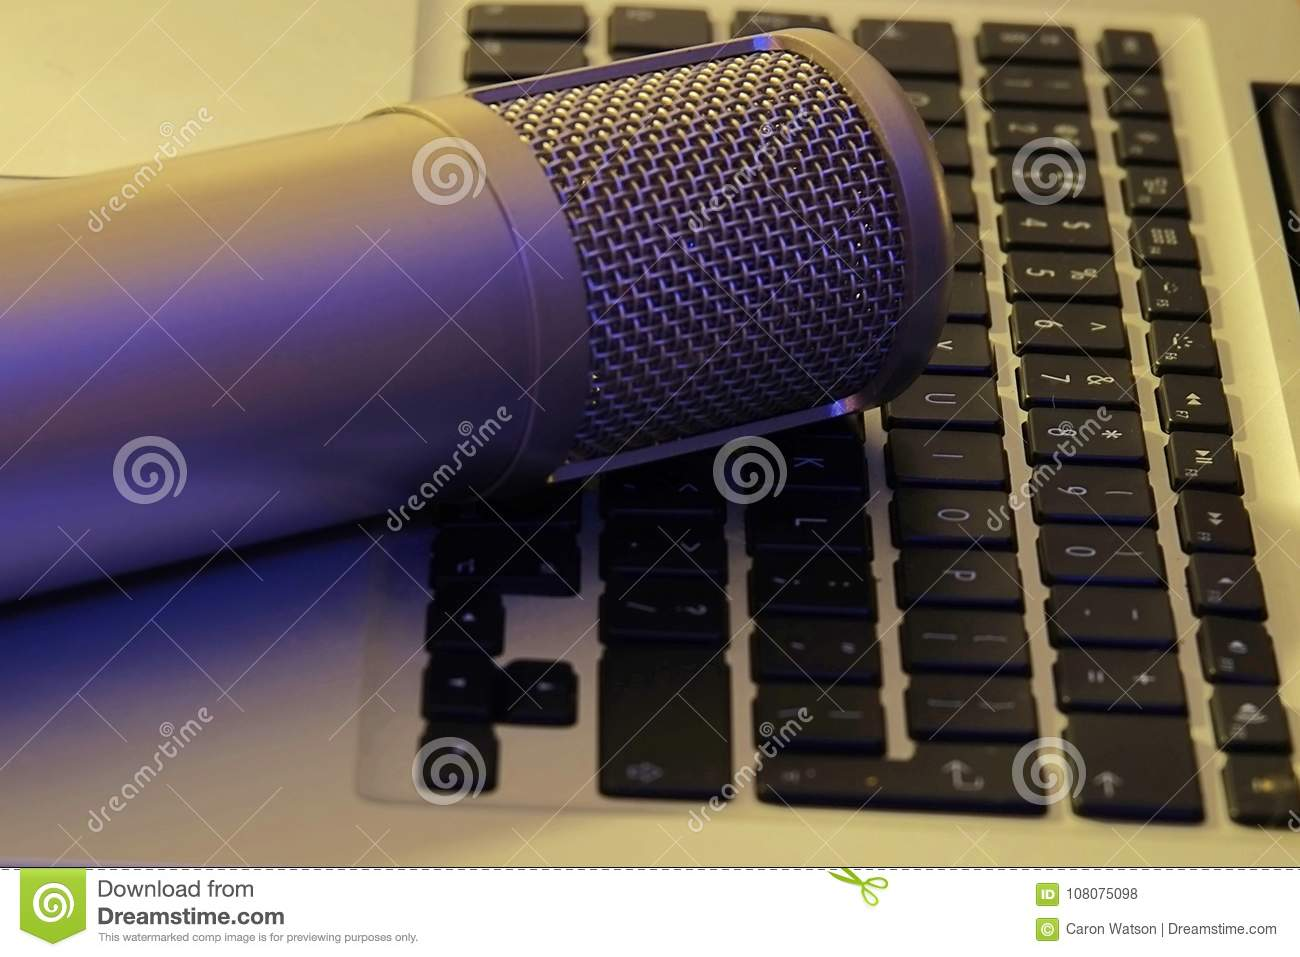 Podcast Microphone on laptop computer keyboard